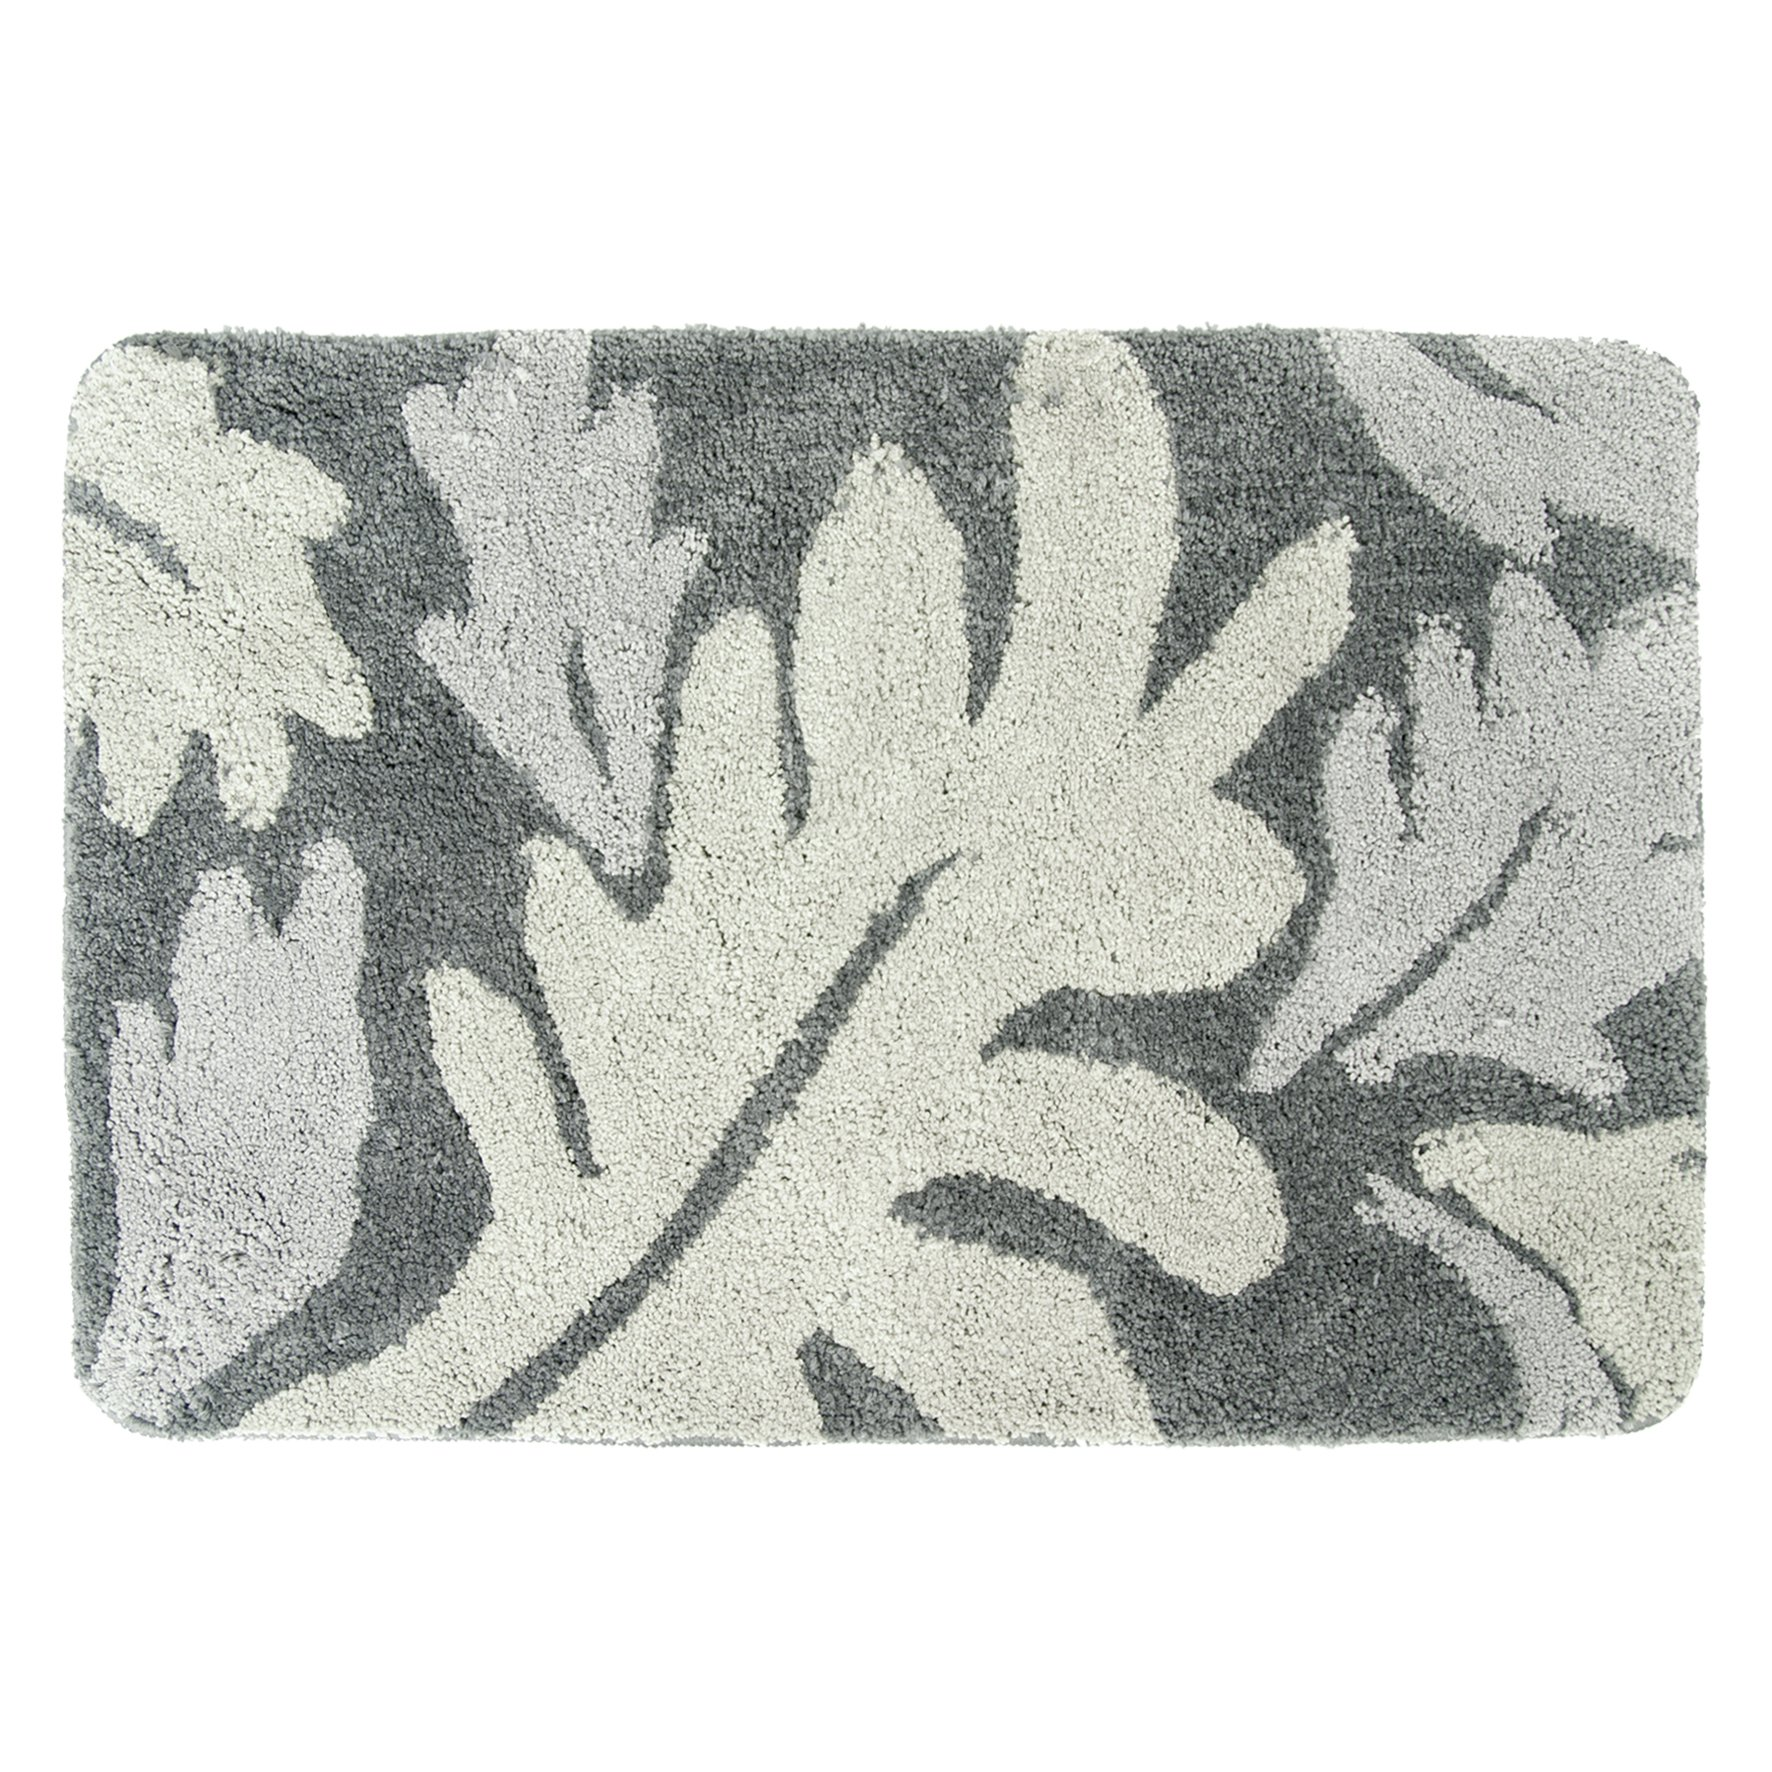 DIFFERNZ 31.220.46 Folia Bath Mat, Grey by Differnz